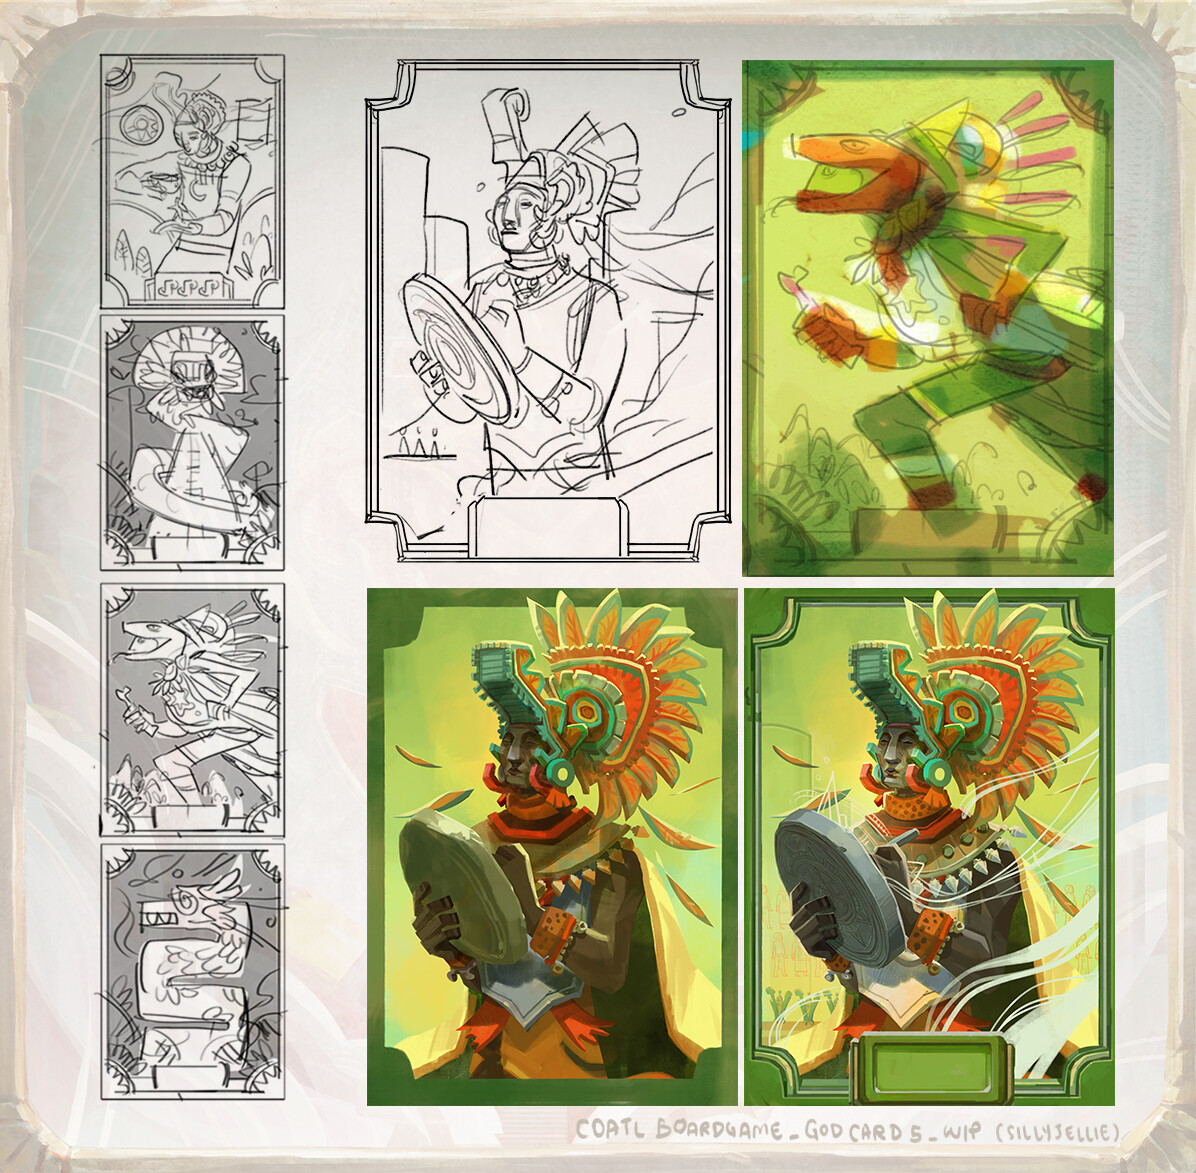 Quetzalcoatl, aka Feathered Serpent, is the Aztec god of wind, air, and learning. He is the inventor of books and calendar, giver of maize corn to man. He is the creator of present humans, made from grounded bones of previous humans mixed with his blood.